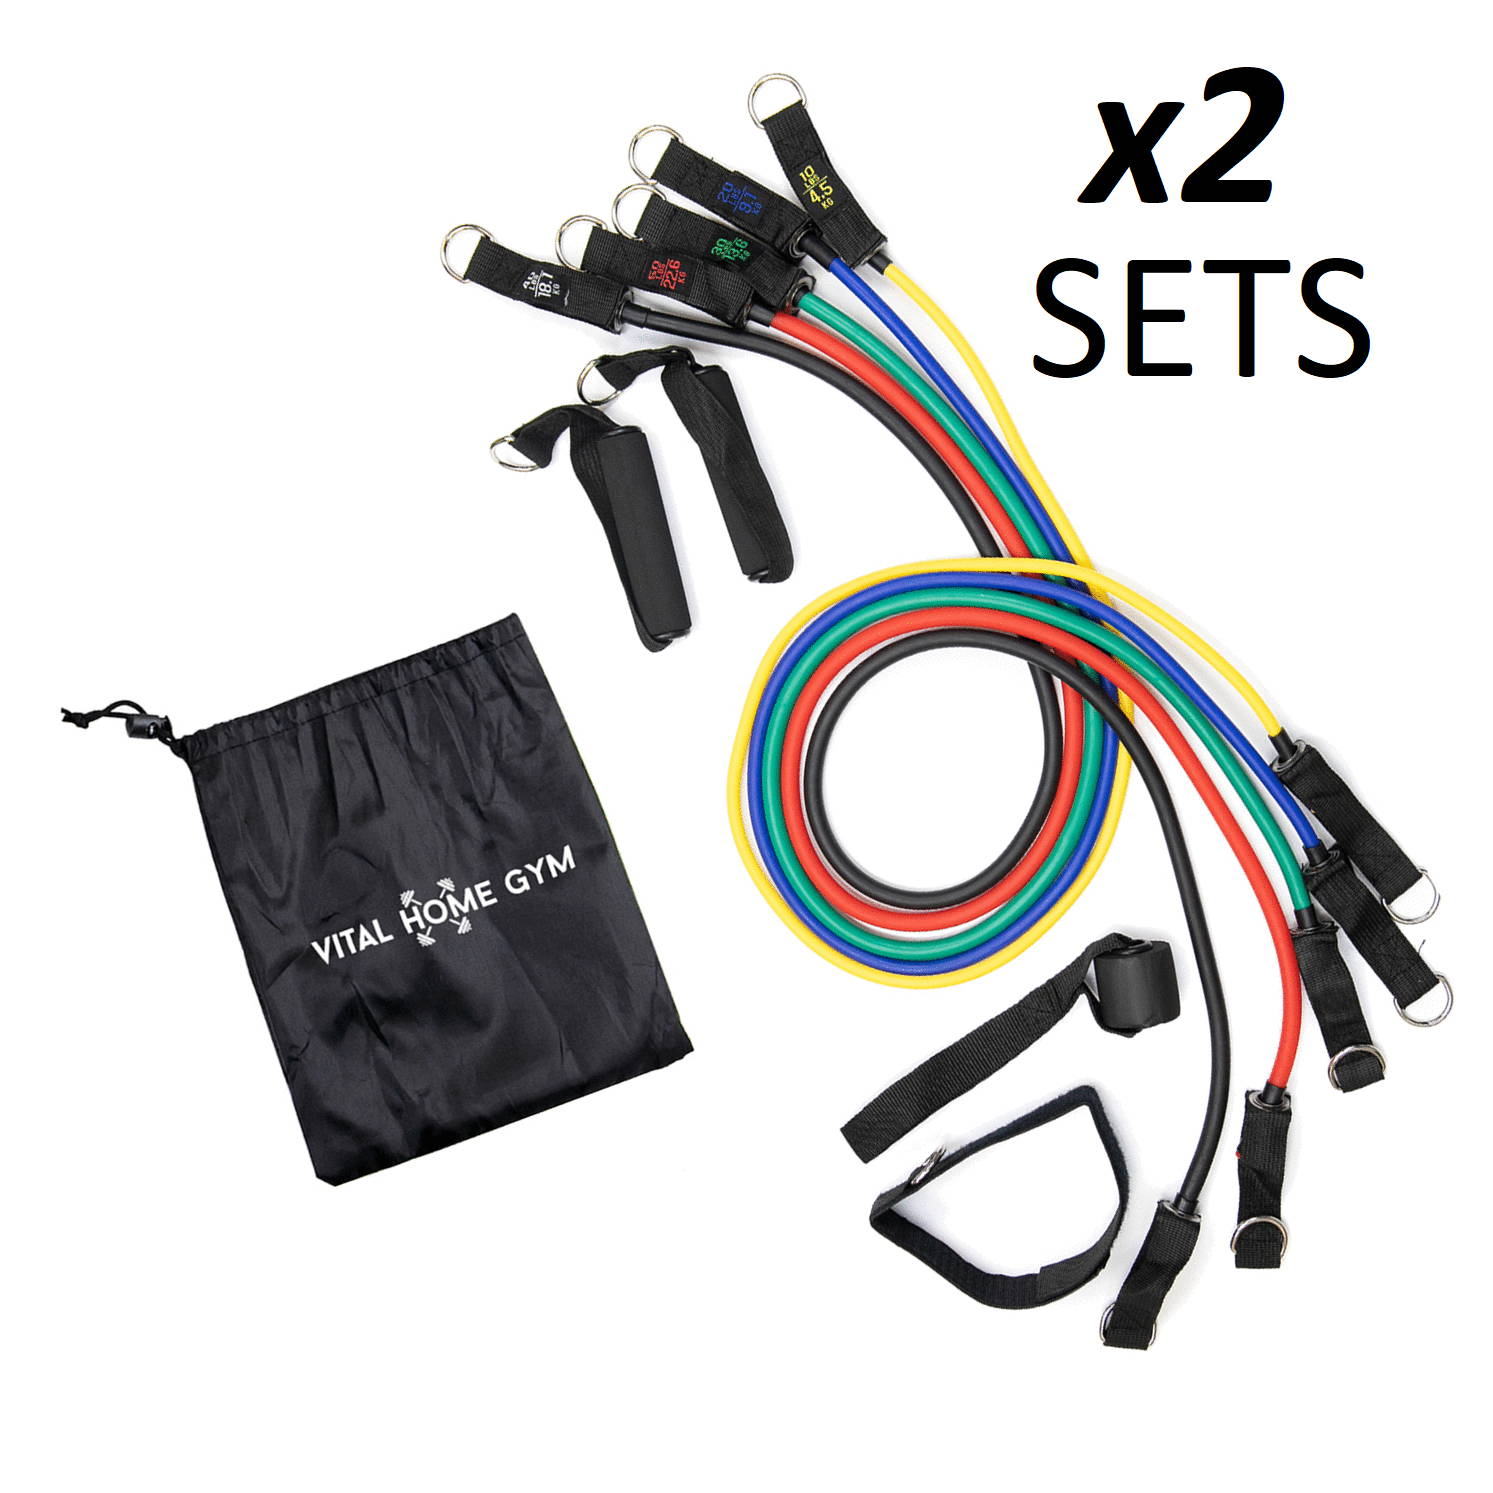 work out bands, workout resistance bands, workout bands with handles